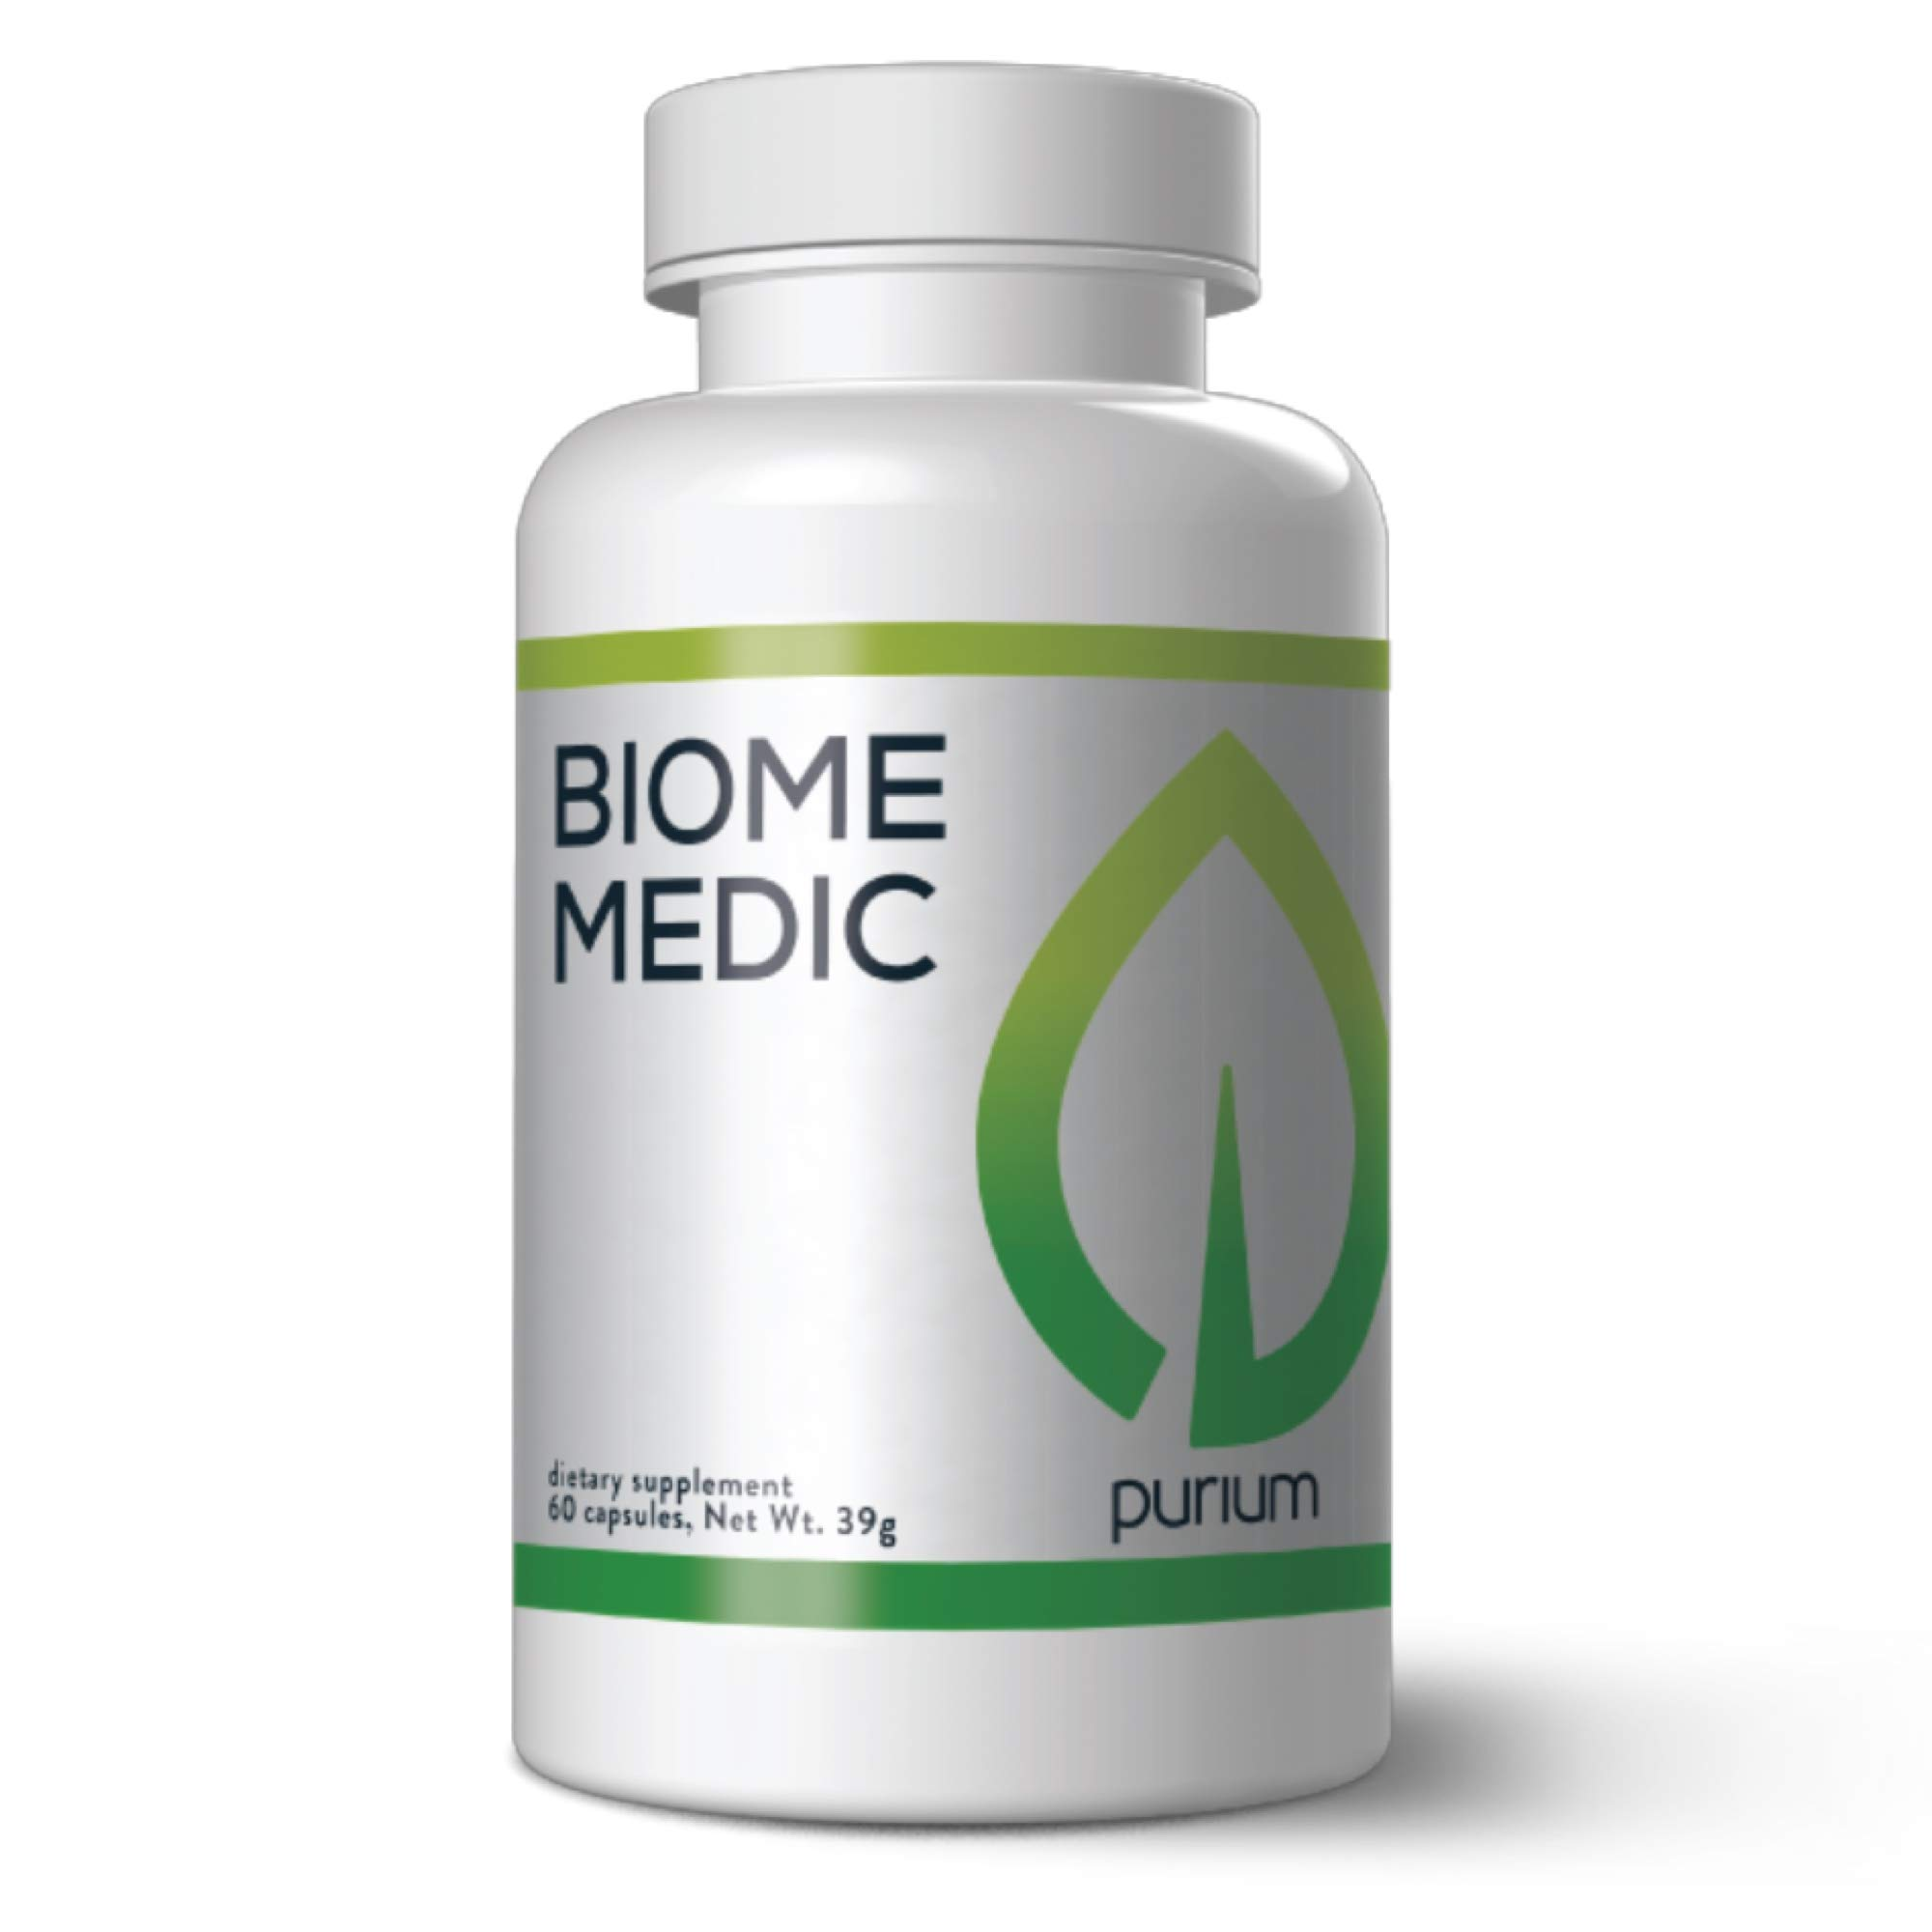 Purium Biome Medic - 60 Vegan Capsules - Gut Health Support Supplement, Removes GMO Toxins, Supports Good Bacteria, Repairs Microbiome - Vegetarian, Gluten Free - 60 Servings by Purium